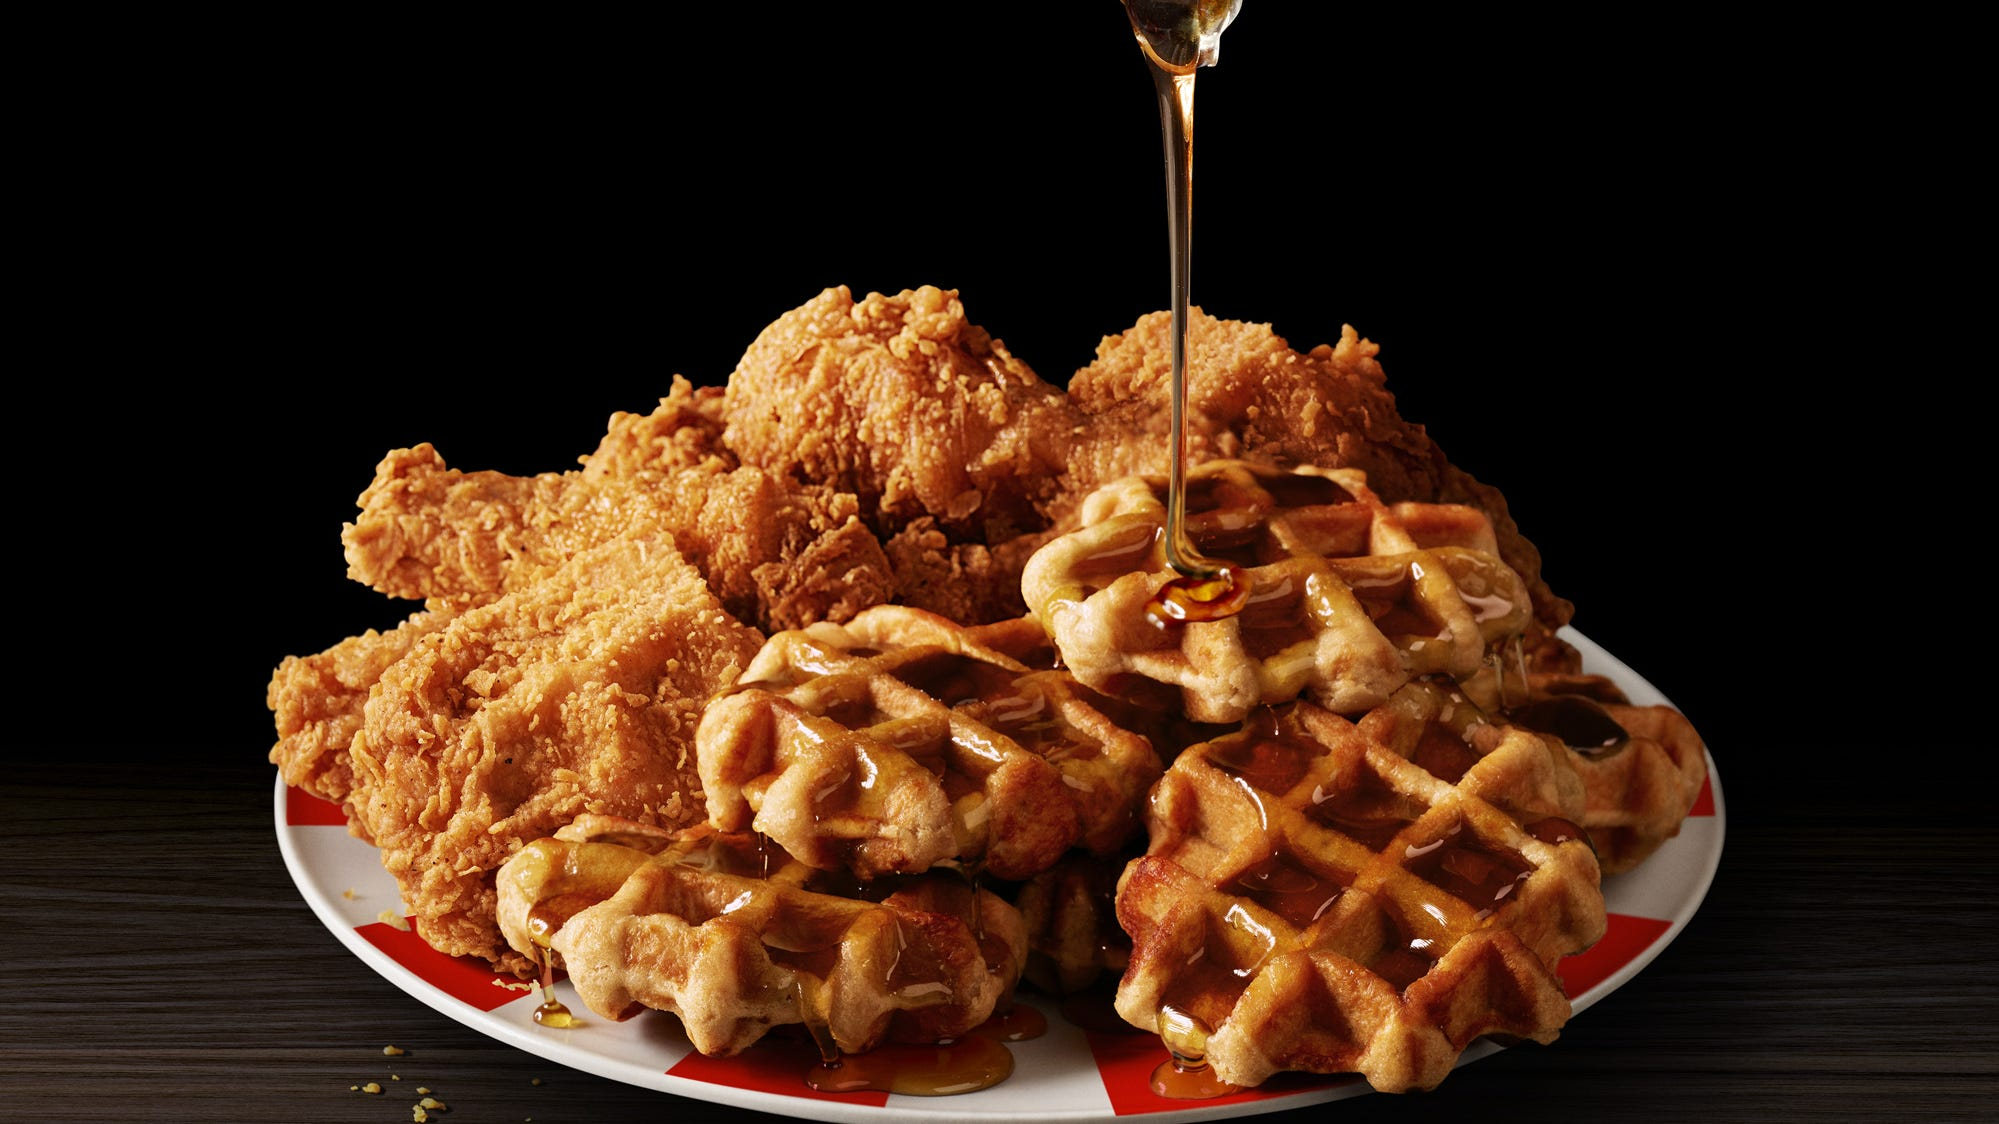 Kentucky Fried Chicken & Waffles pairs the KFC's Extra Crispy fried chicken with Belgian Liege-style waffles.